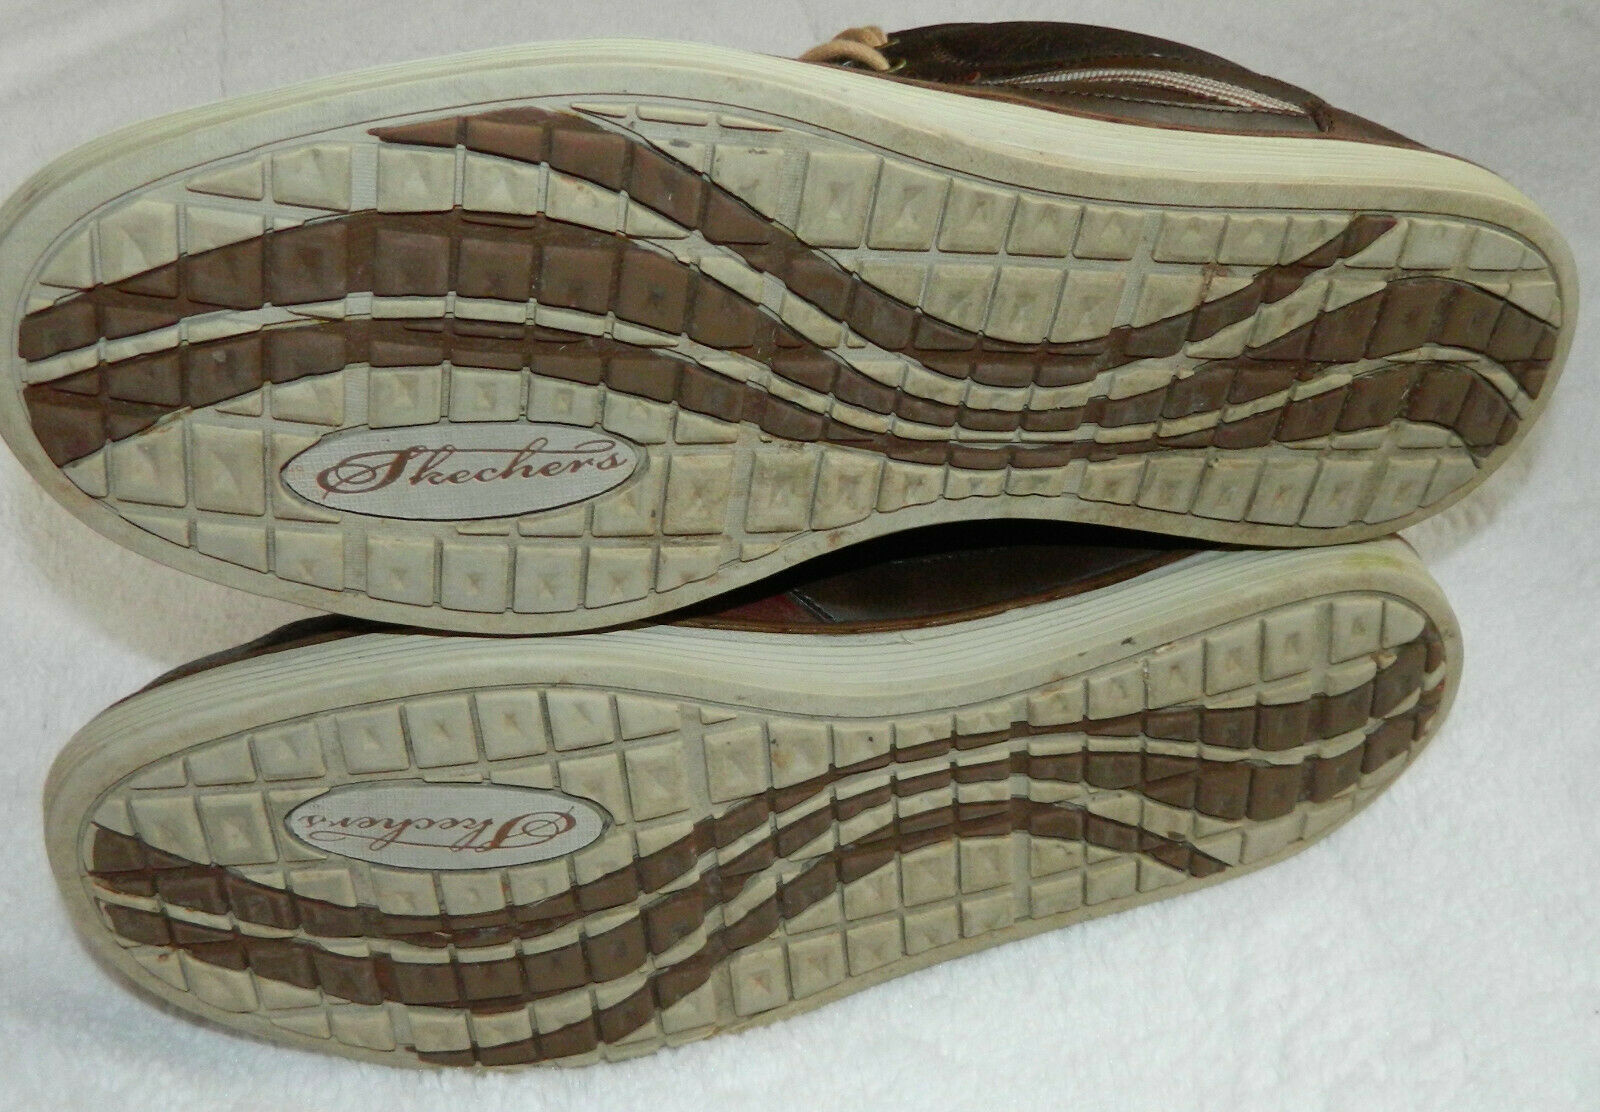 Skechers Sz 13 Sneakers Shoes Leather Brown Sorino Lozano Hi-Tops Relaxed Fit  Q